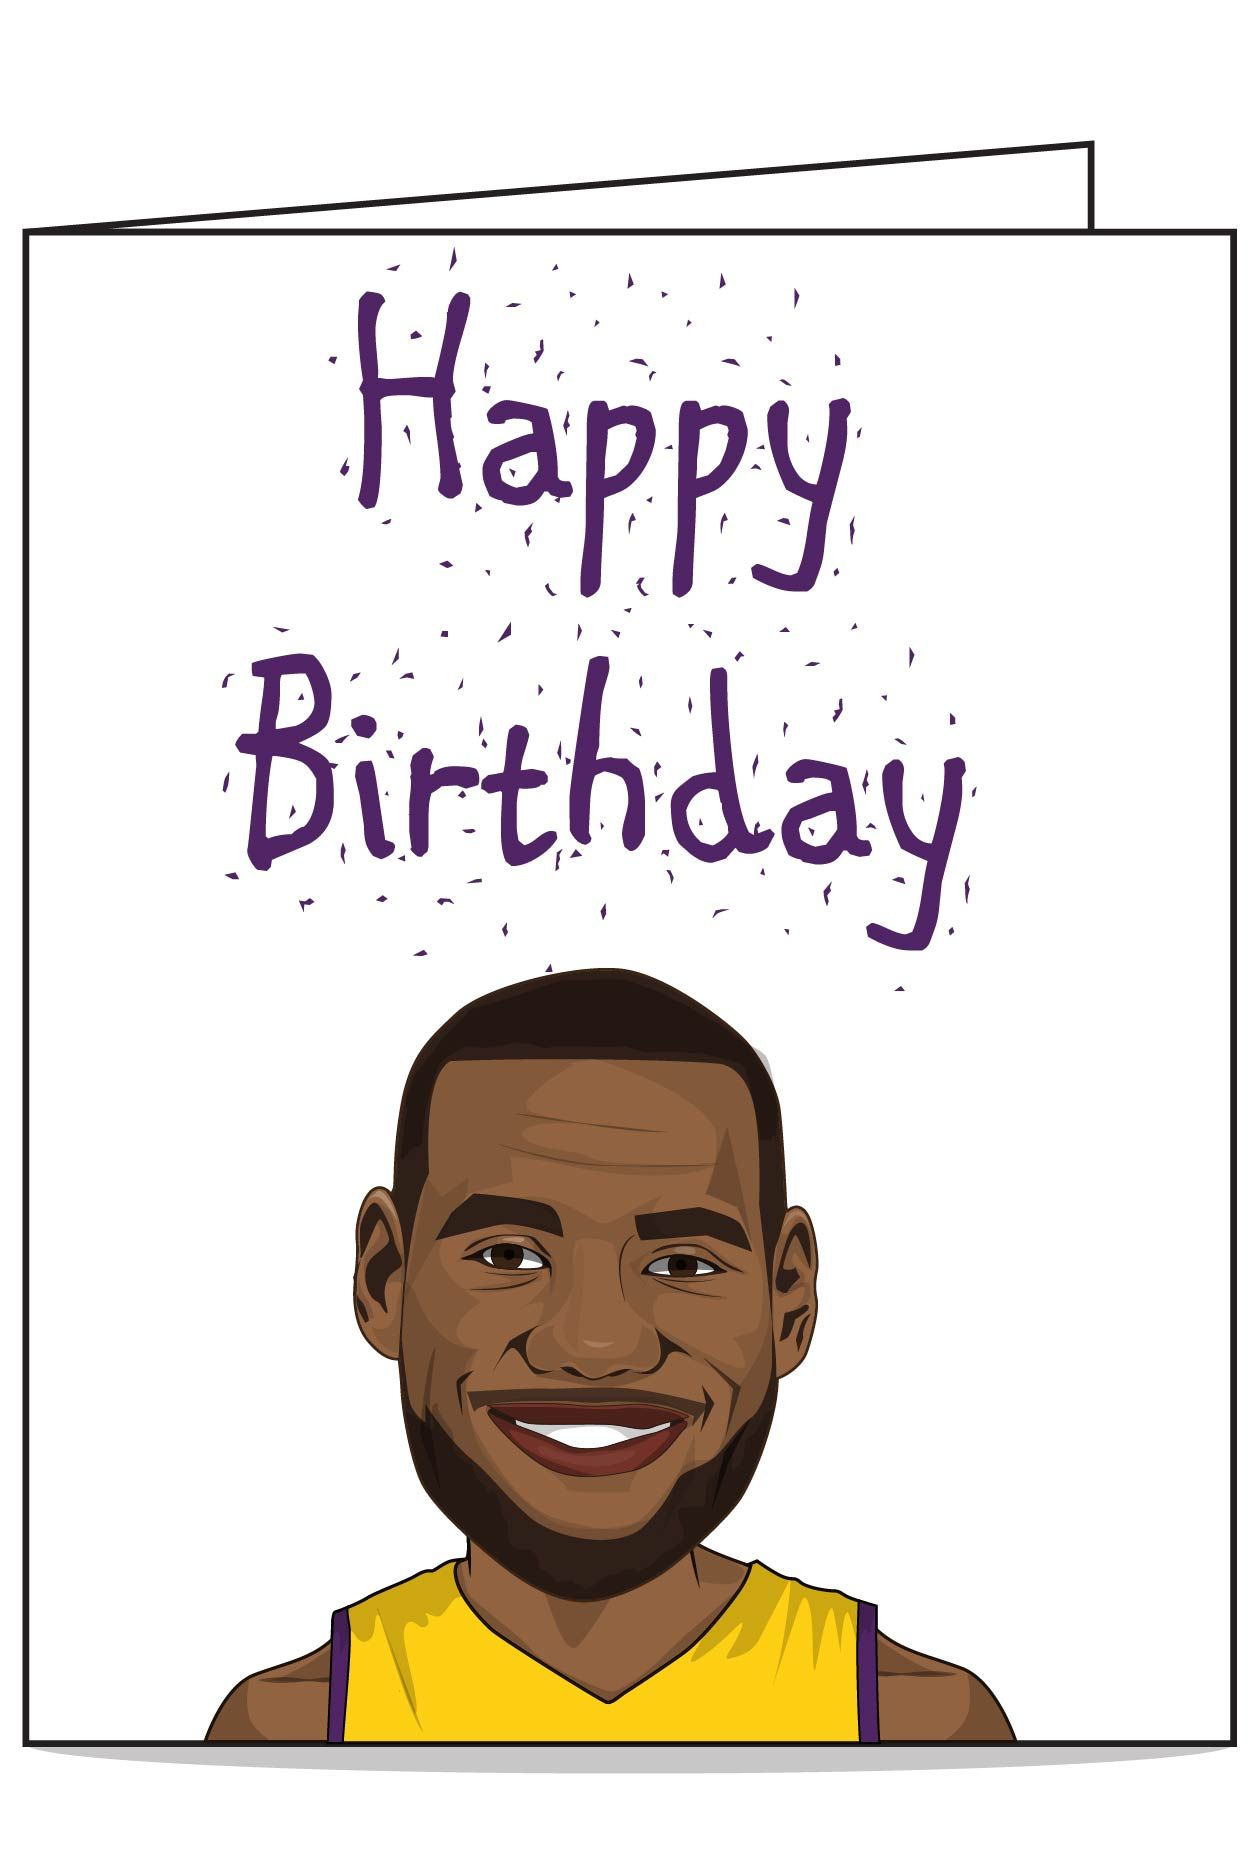 Lebron birthday card with images birthday cards